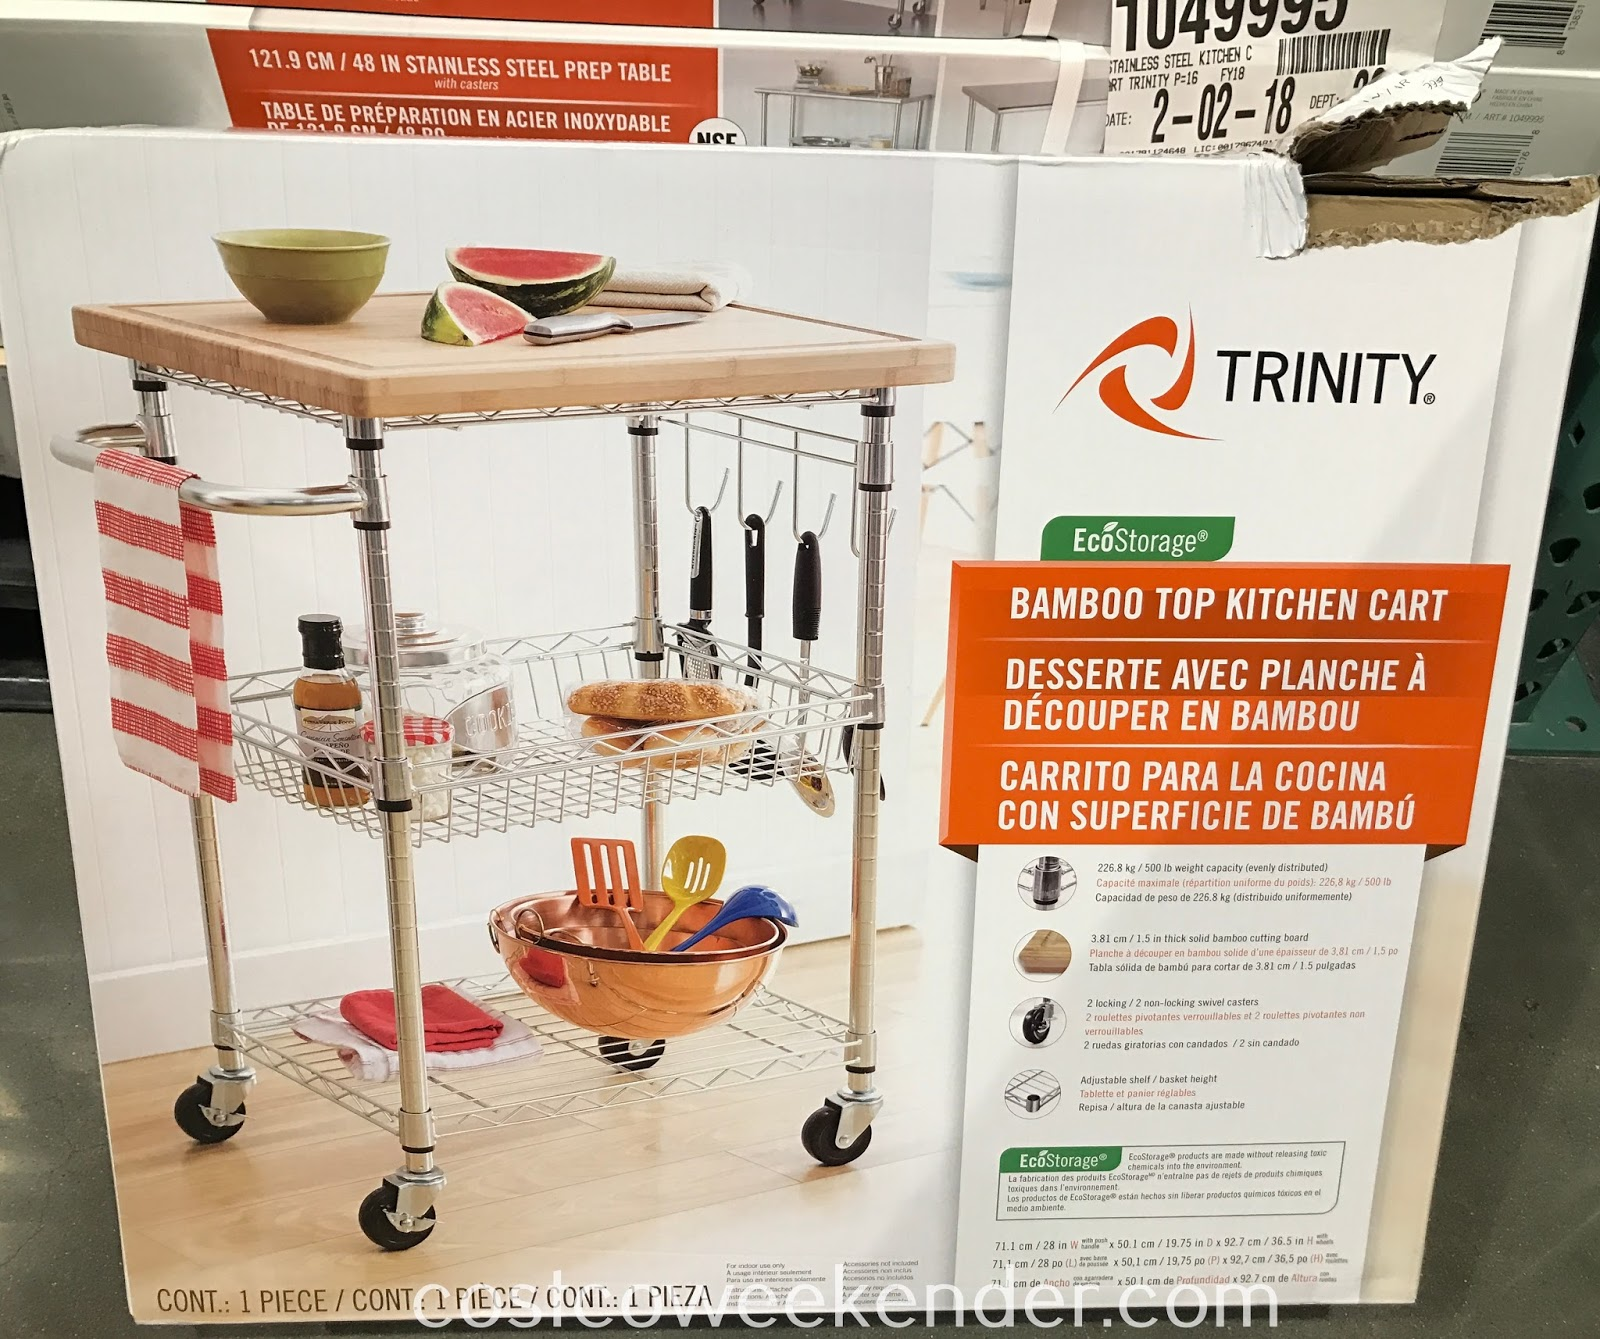 Costco 1049997 - Get extra counter space in your kitchen with the Trinity Bamboo Top Kitchen Cart